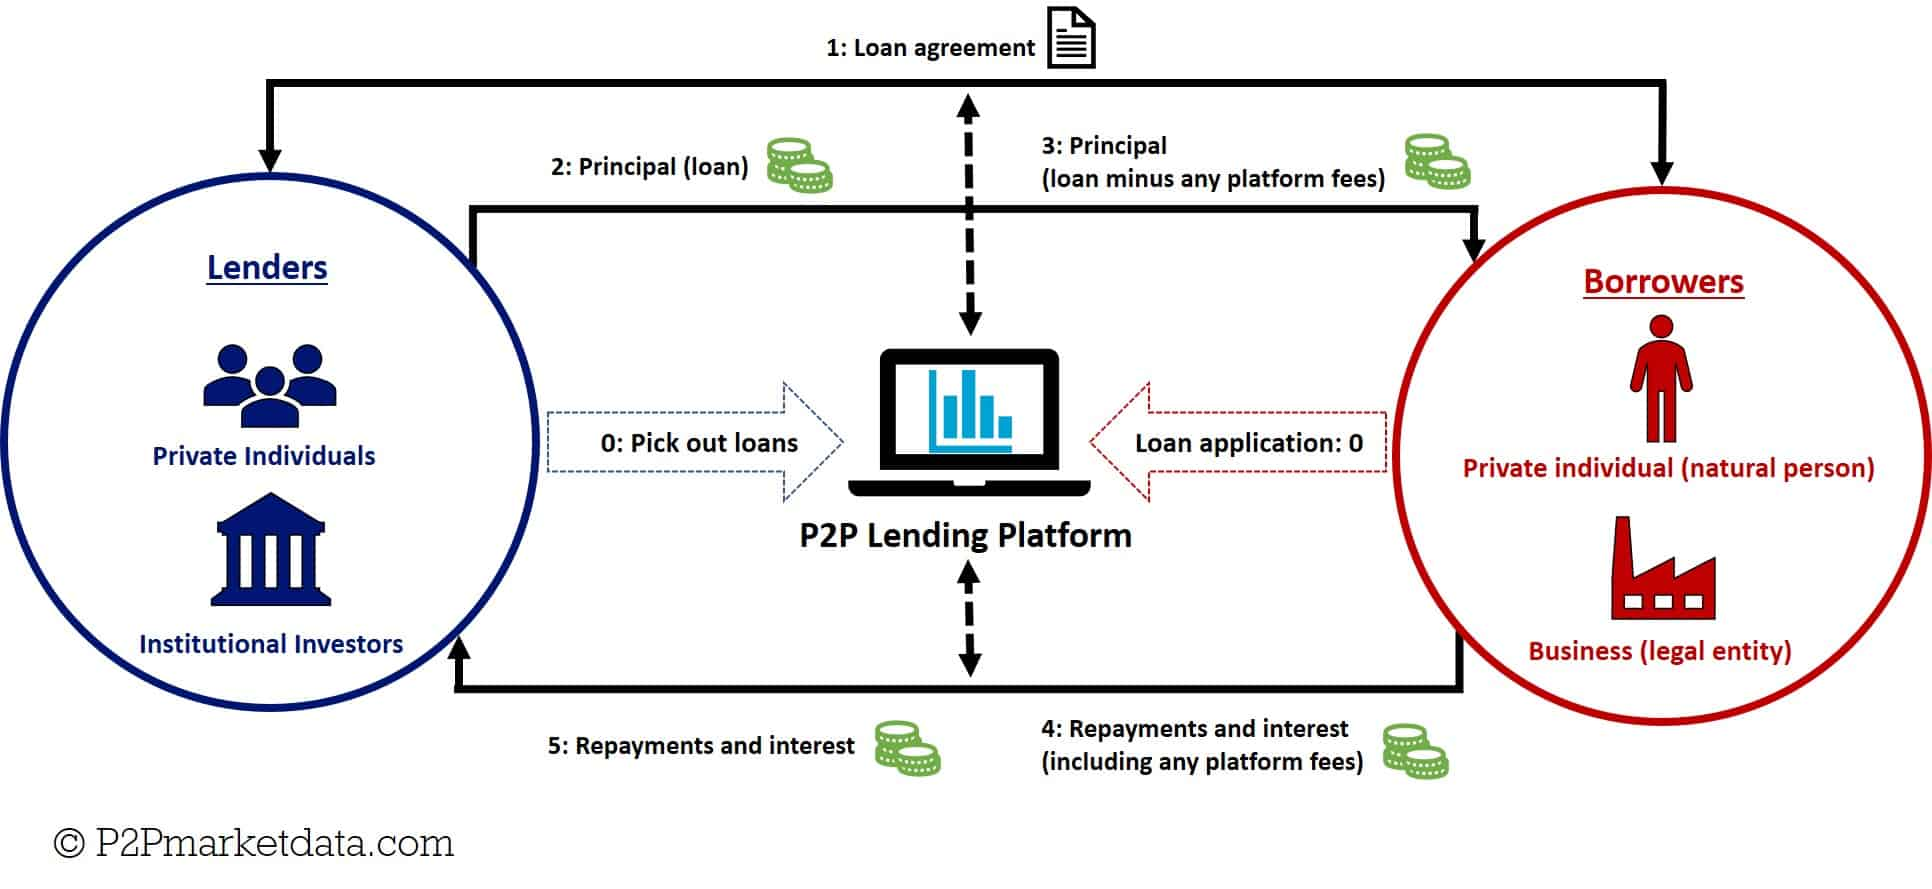 Infographic on how peer to peer lending works - dynamics between the lenders, the platform, and the borrowers